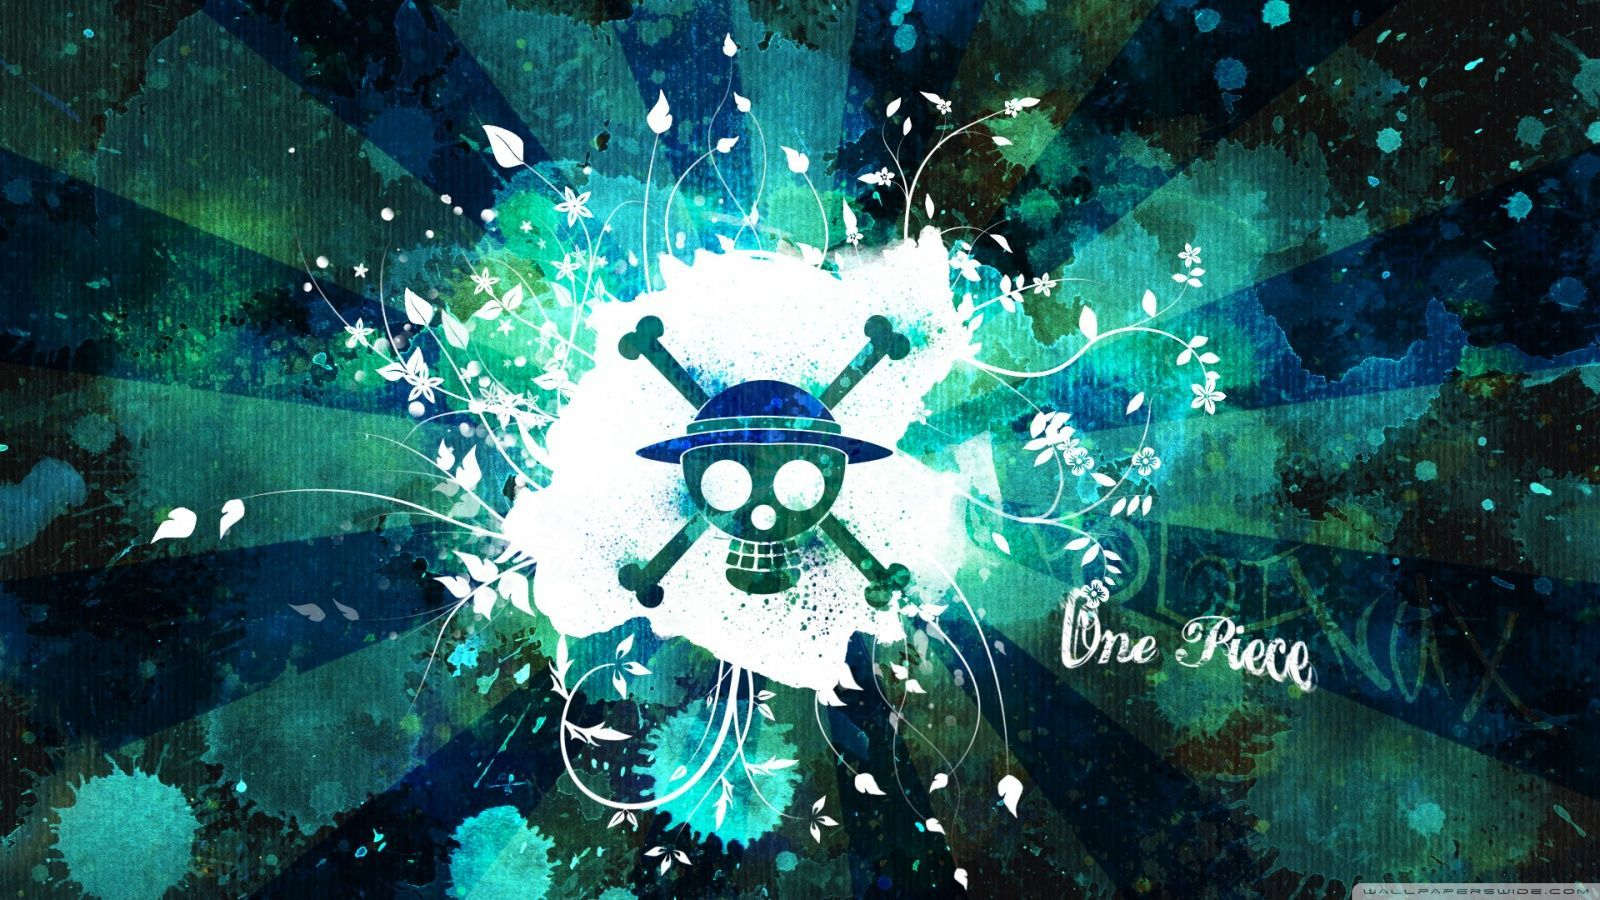 One Piece Ultra Hd Desktop Background Wallpaper For 4k Uhd Trend In 2020 Anime Wallpaper Android Wallpaper Anime Cute Anime Wallpaper